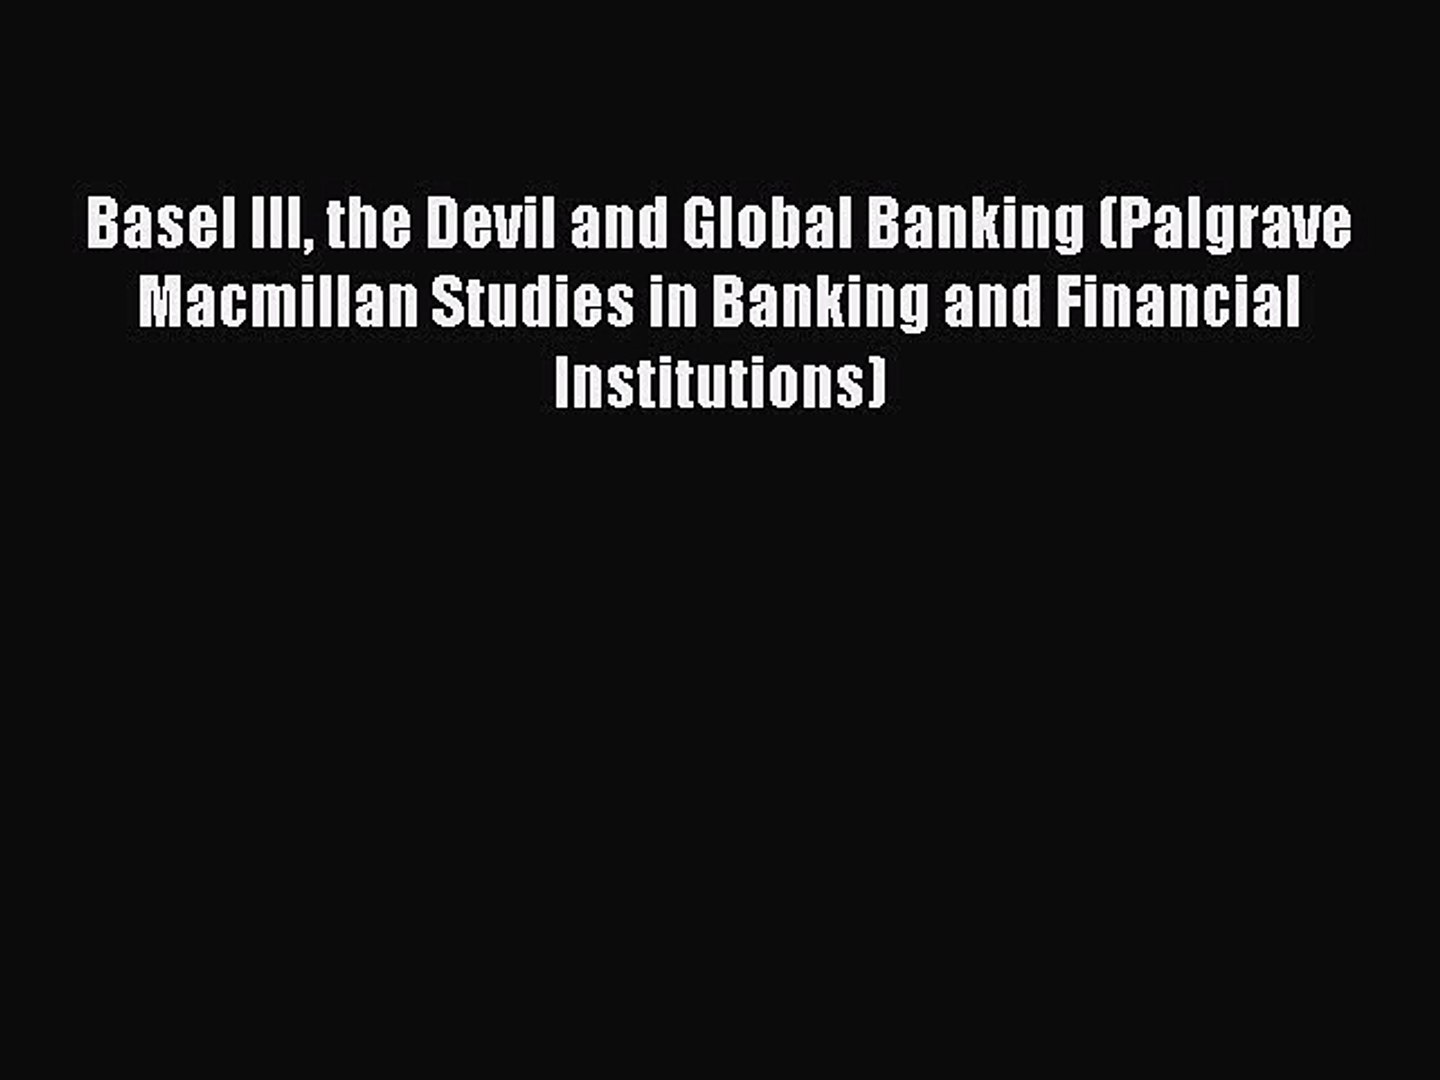 Read Basel III the Devil and Global Banking (Palgrave Macmillan Studies in Banking and Financial